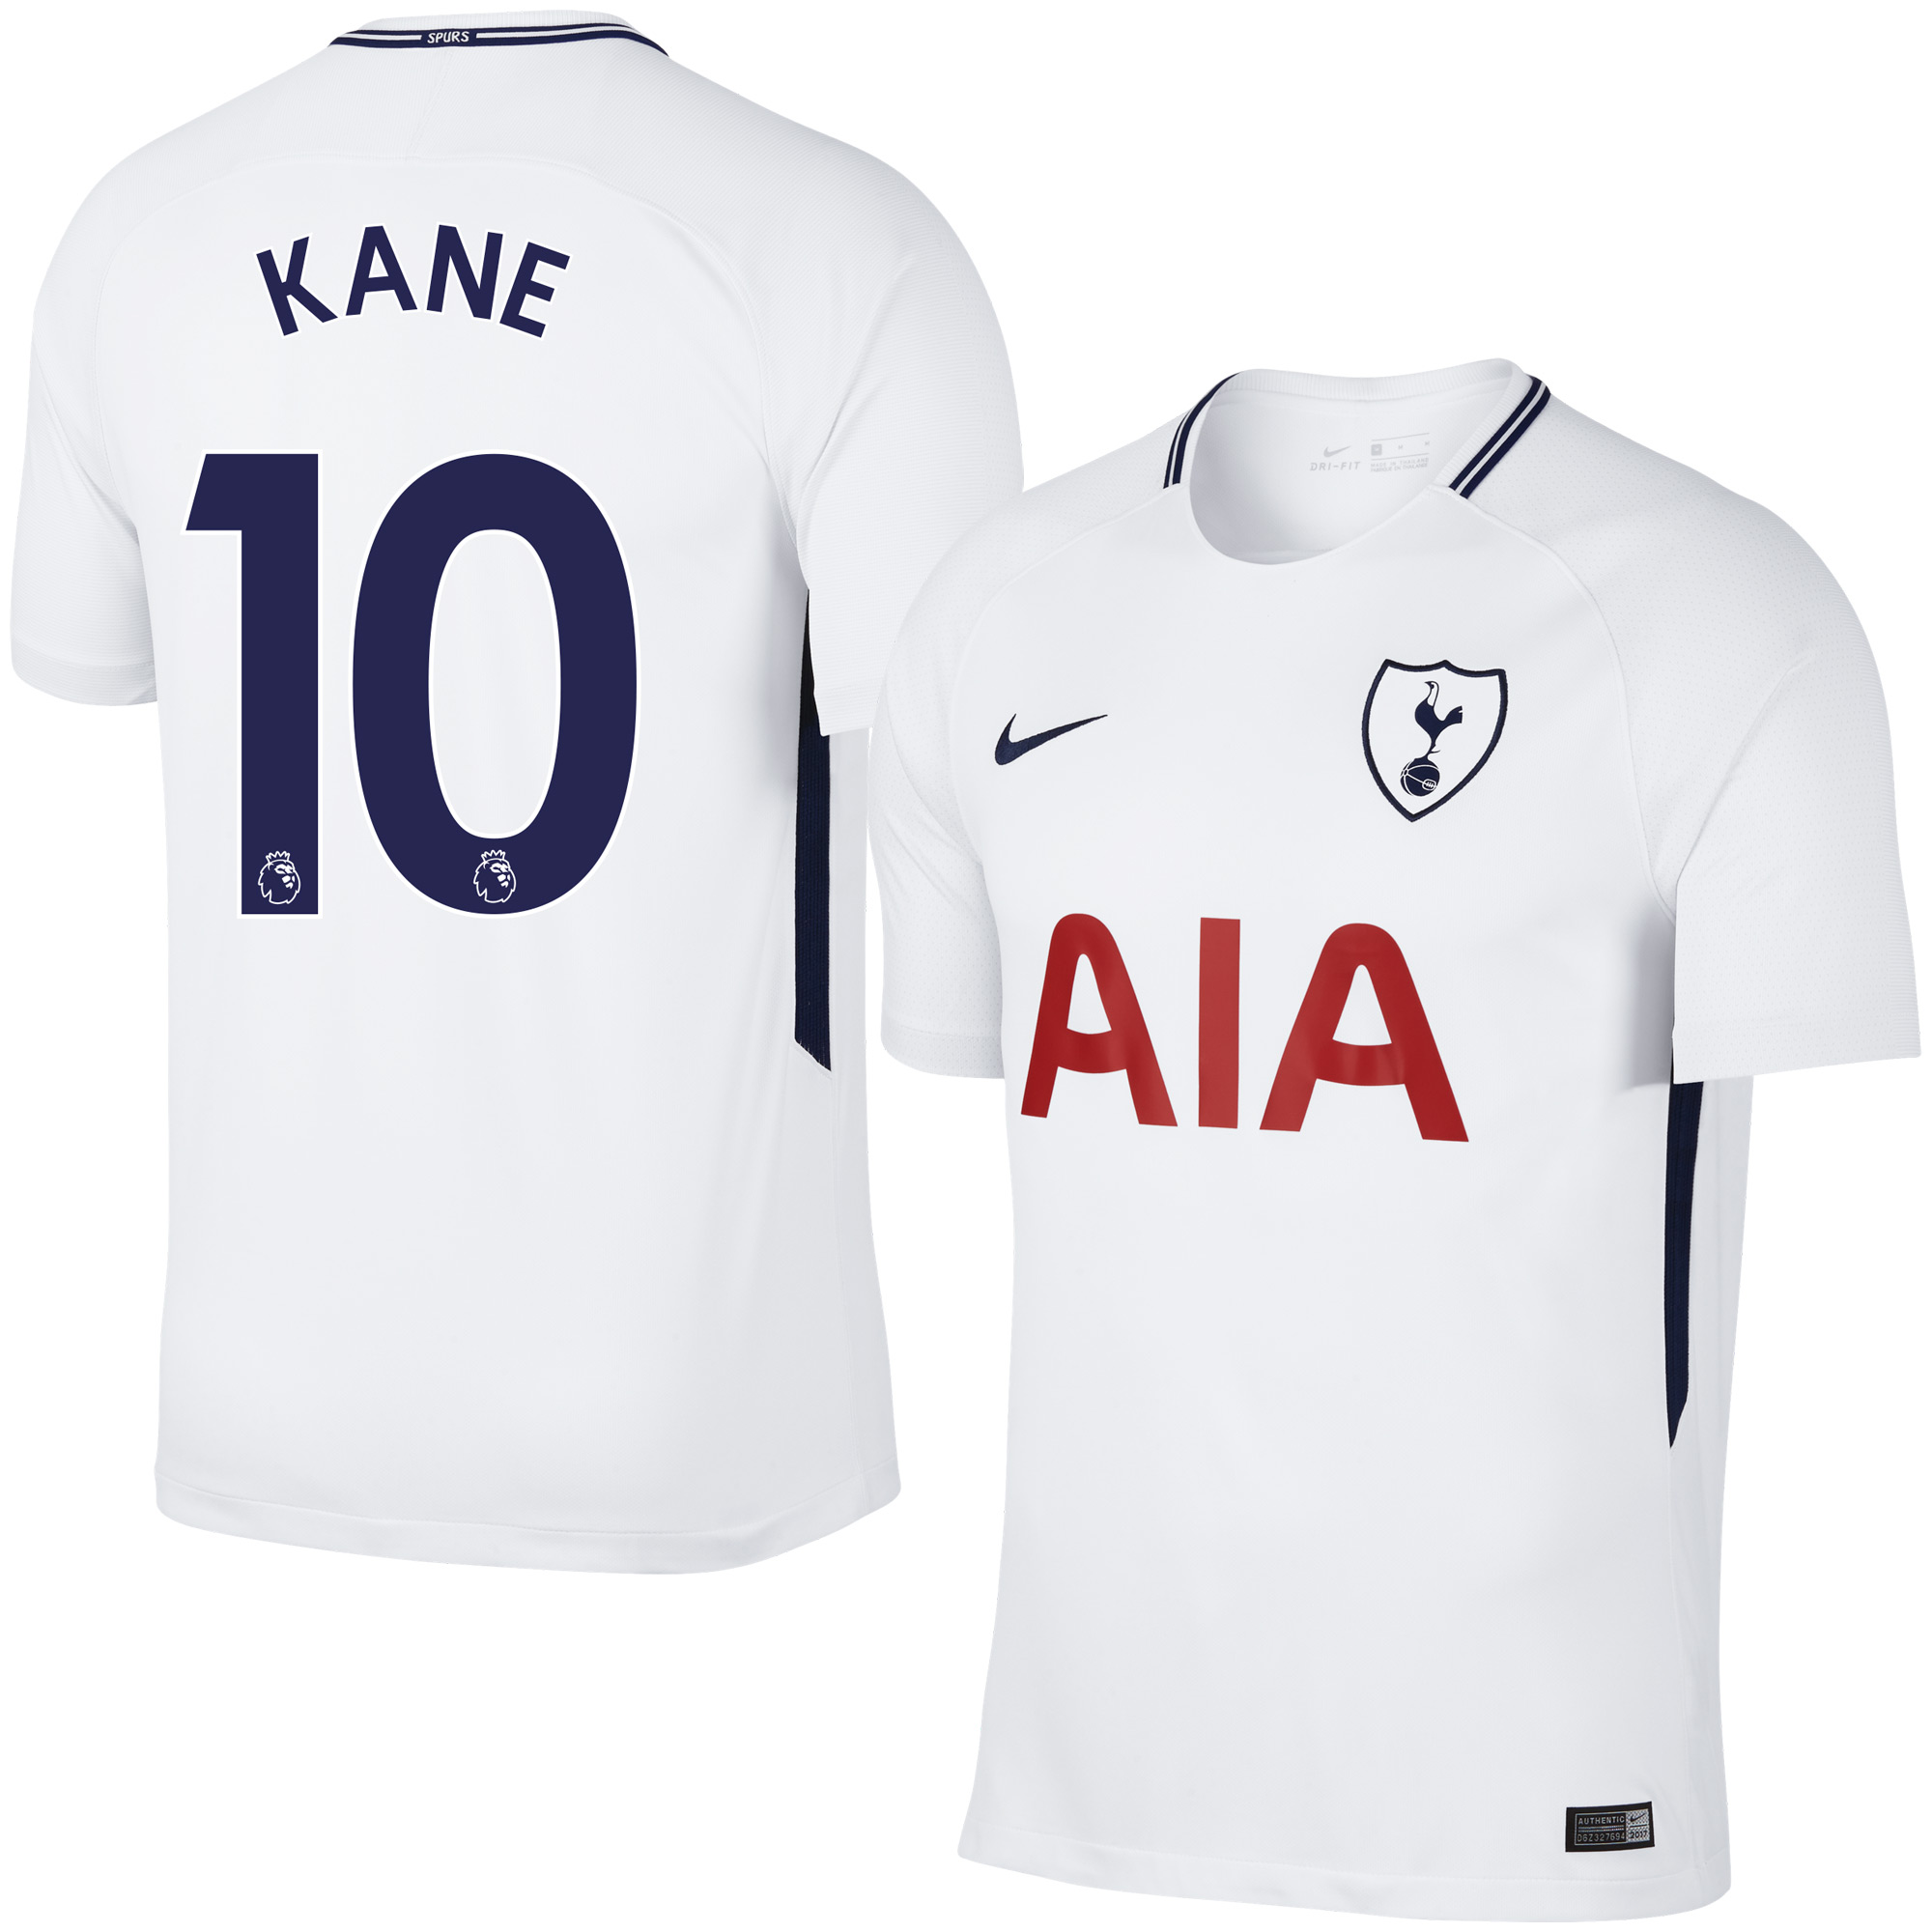 Tottenham Home Kane Jersey 2017 / 2018 (Authentic EPL Printing) - S